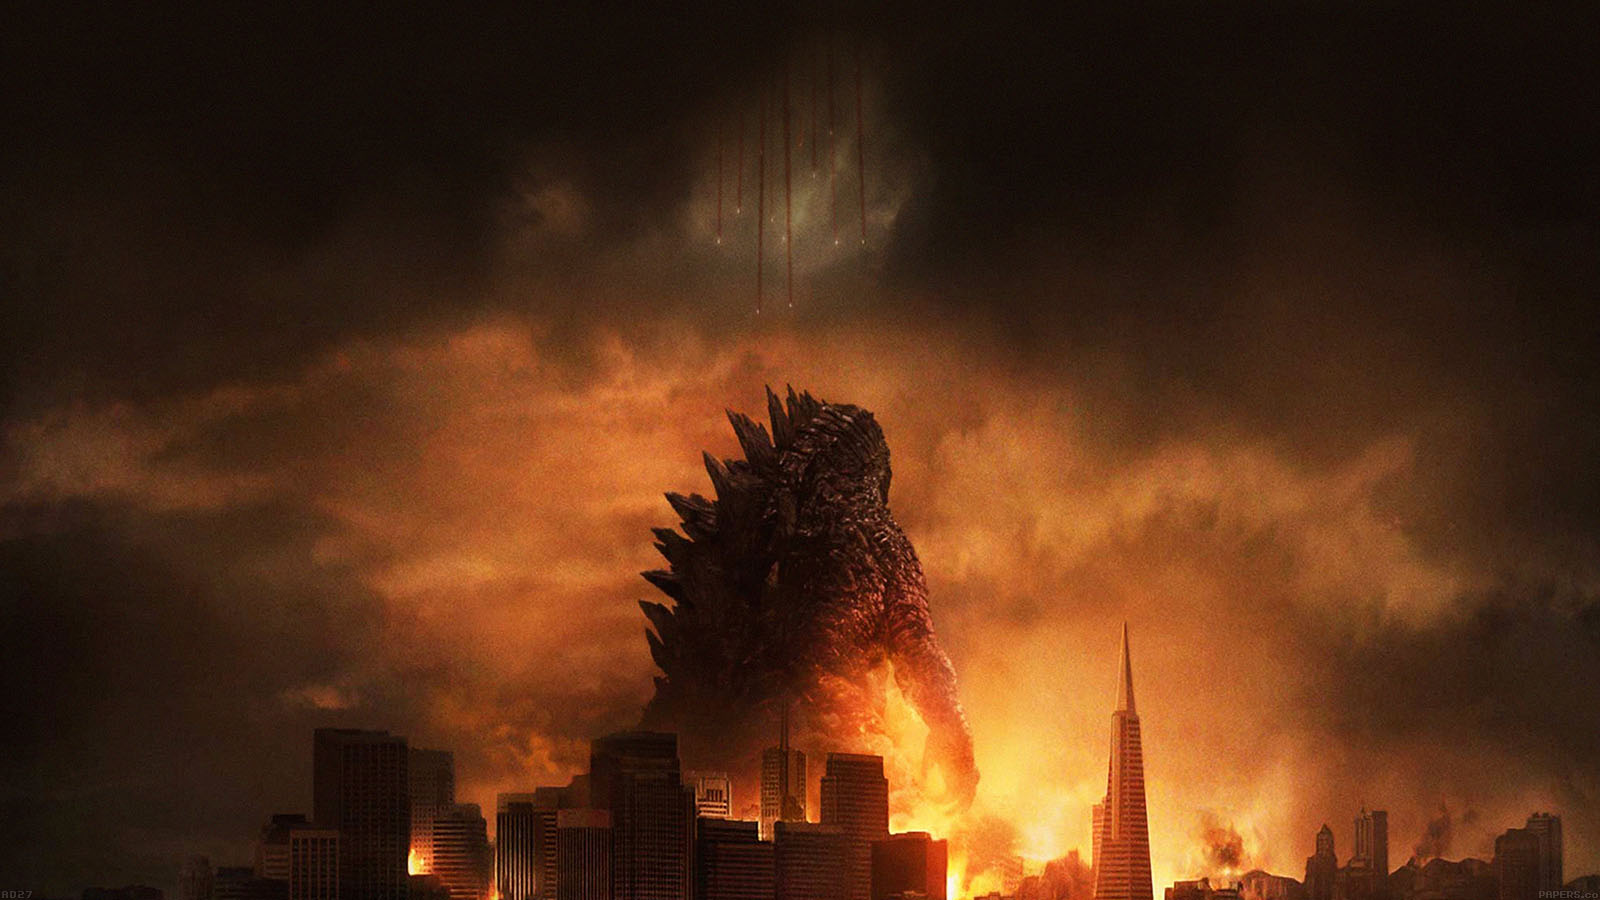 Wallpaper For Desktop Laptop Ad27 Godzilla Poster Film